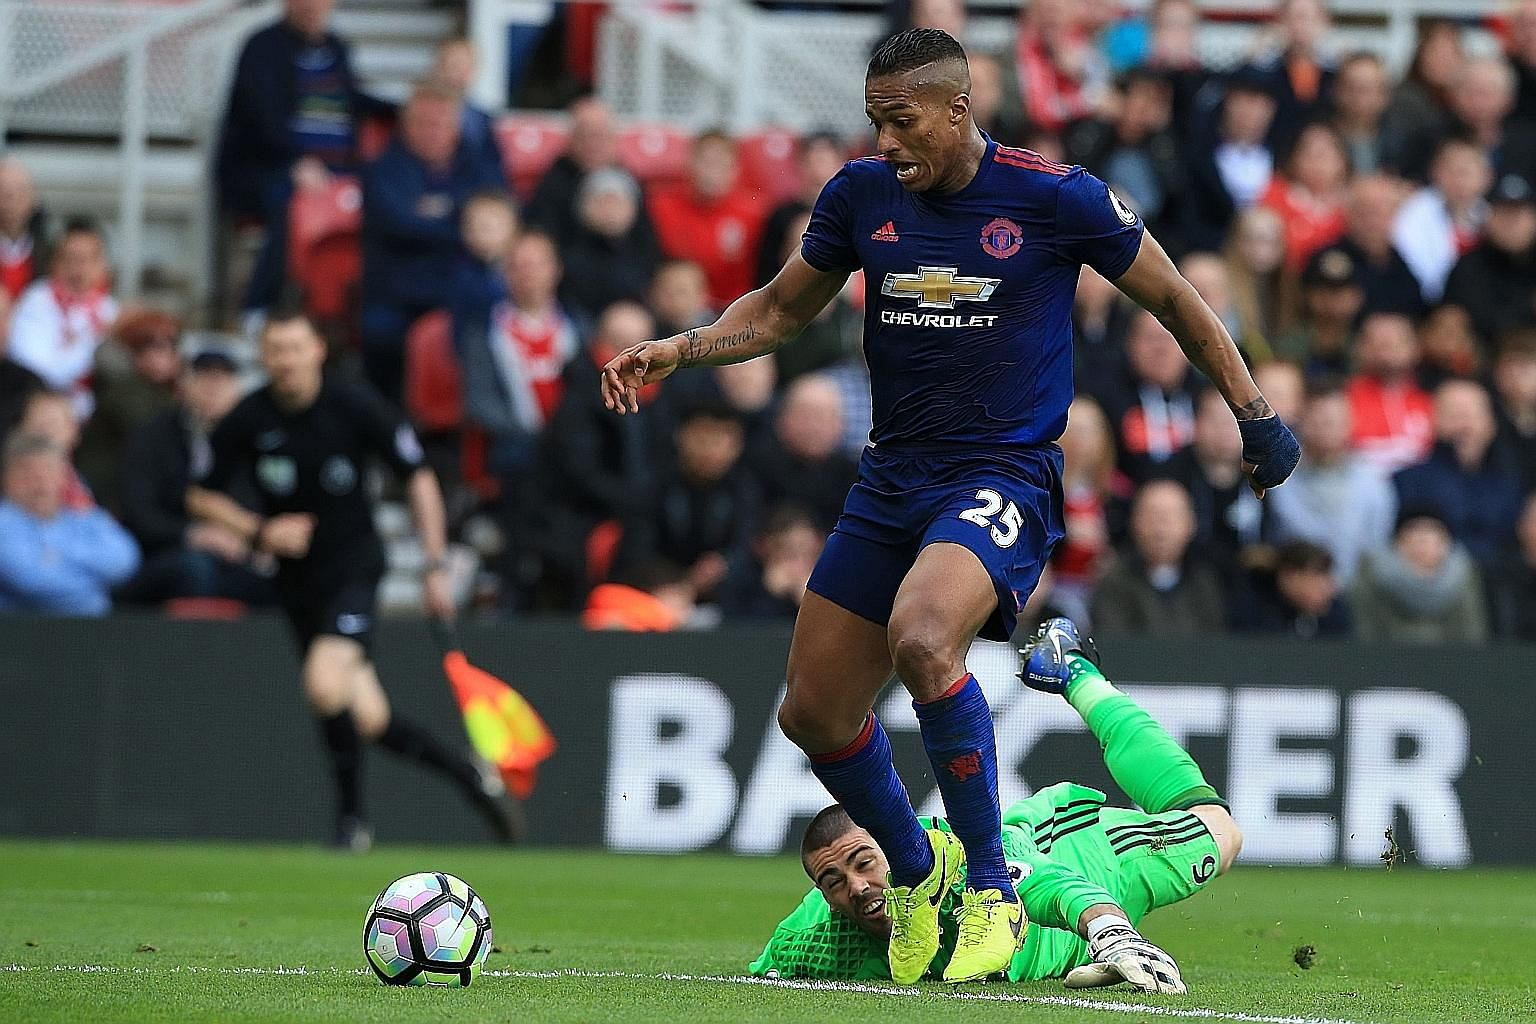 Manchester United's Ecuadorian right-back Antonio Valencia walking in their third goal after a mistake by Middlesbrough's Spanish goalkeeper Víctor Valdes during their English Premier League clash yesterday.